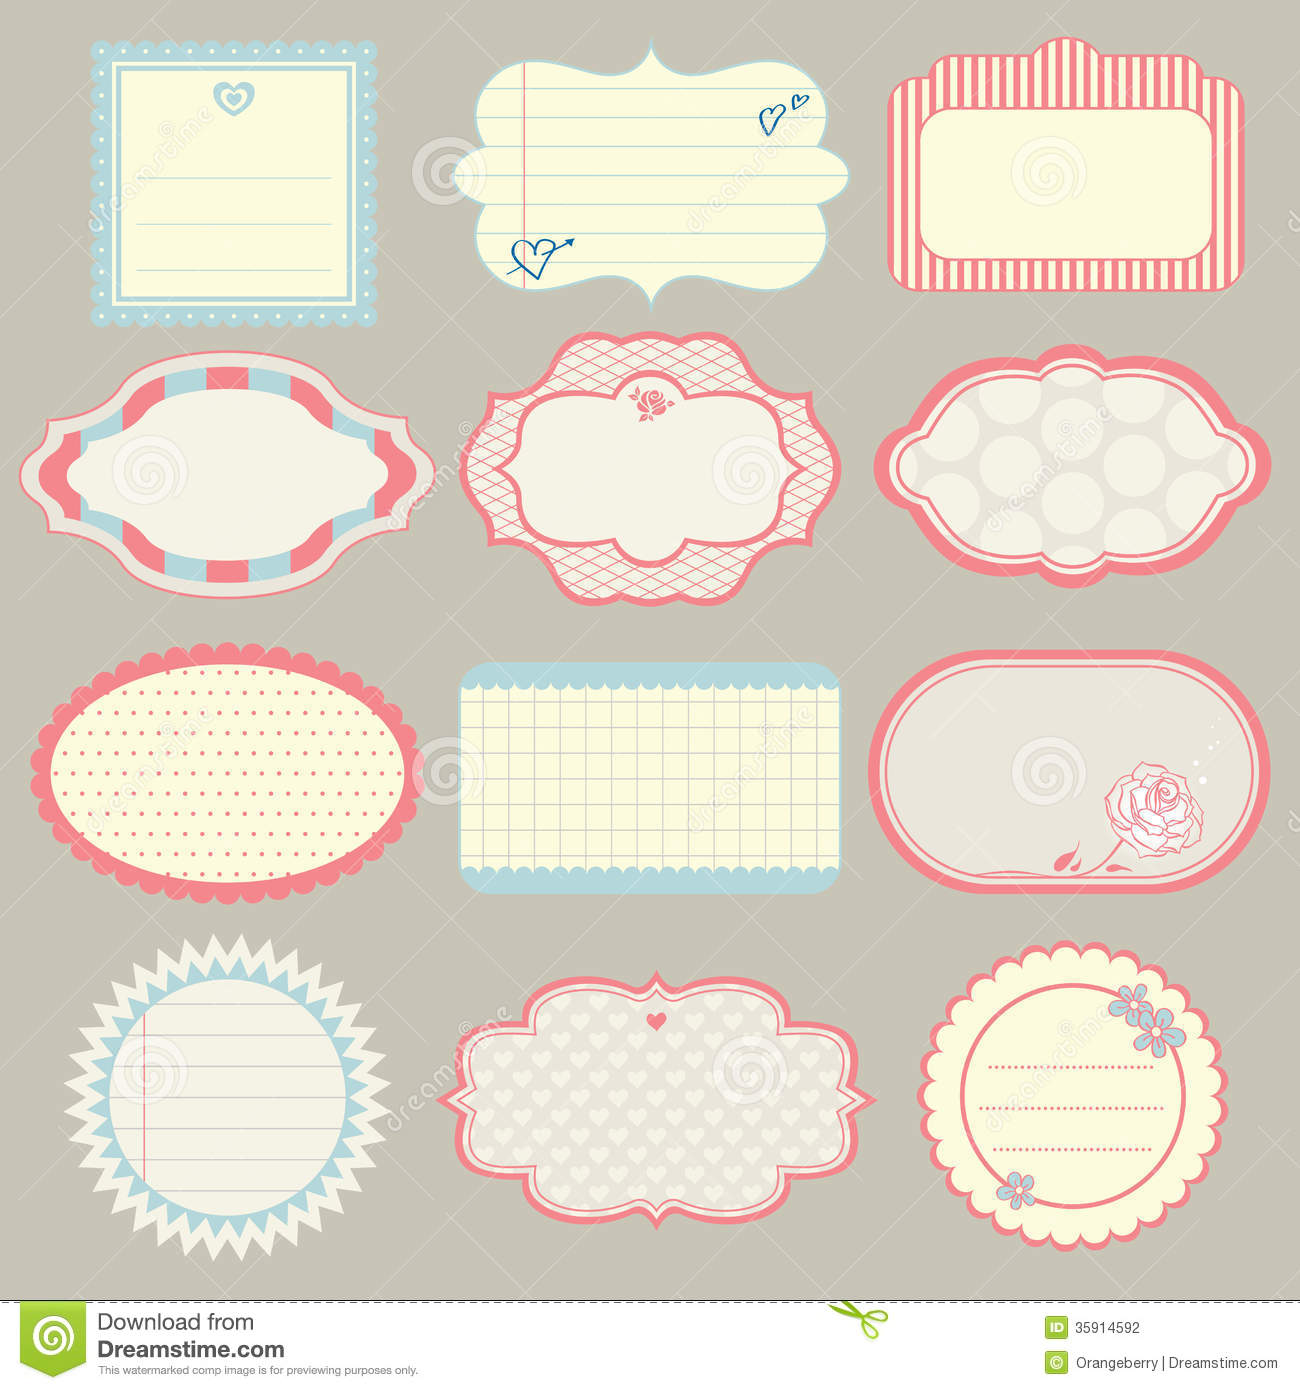 Set Of Cute Frames Stock Photography - Image: 35914592: www.dreamstime.com/stock-photography-set-cute-frames-vector...